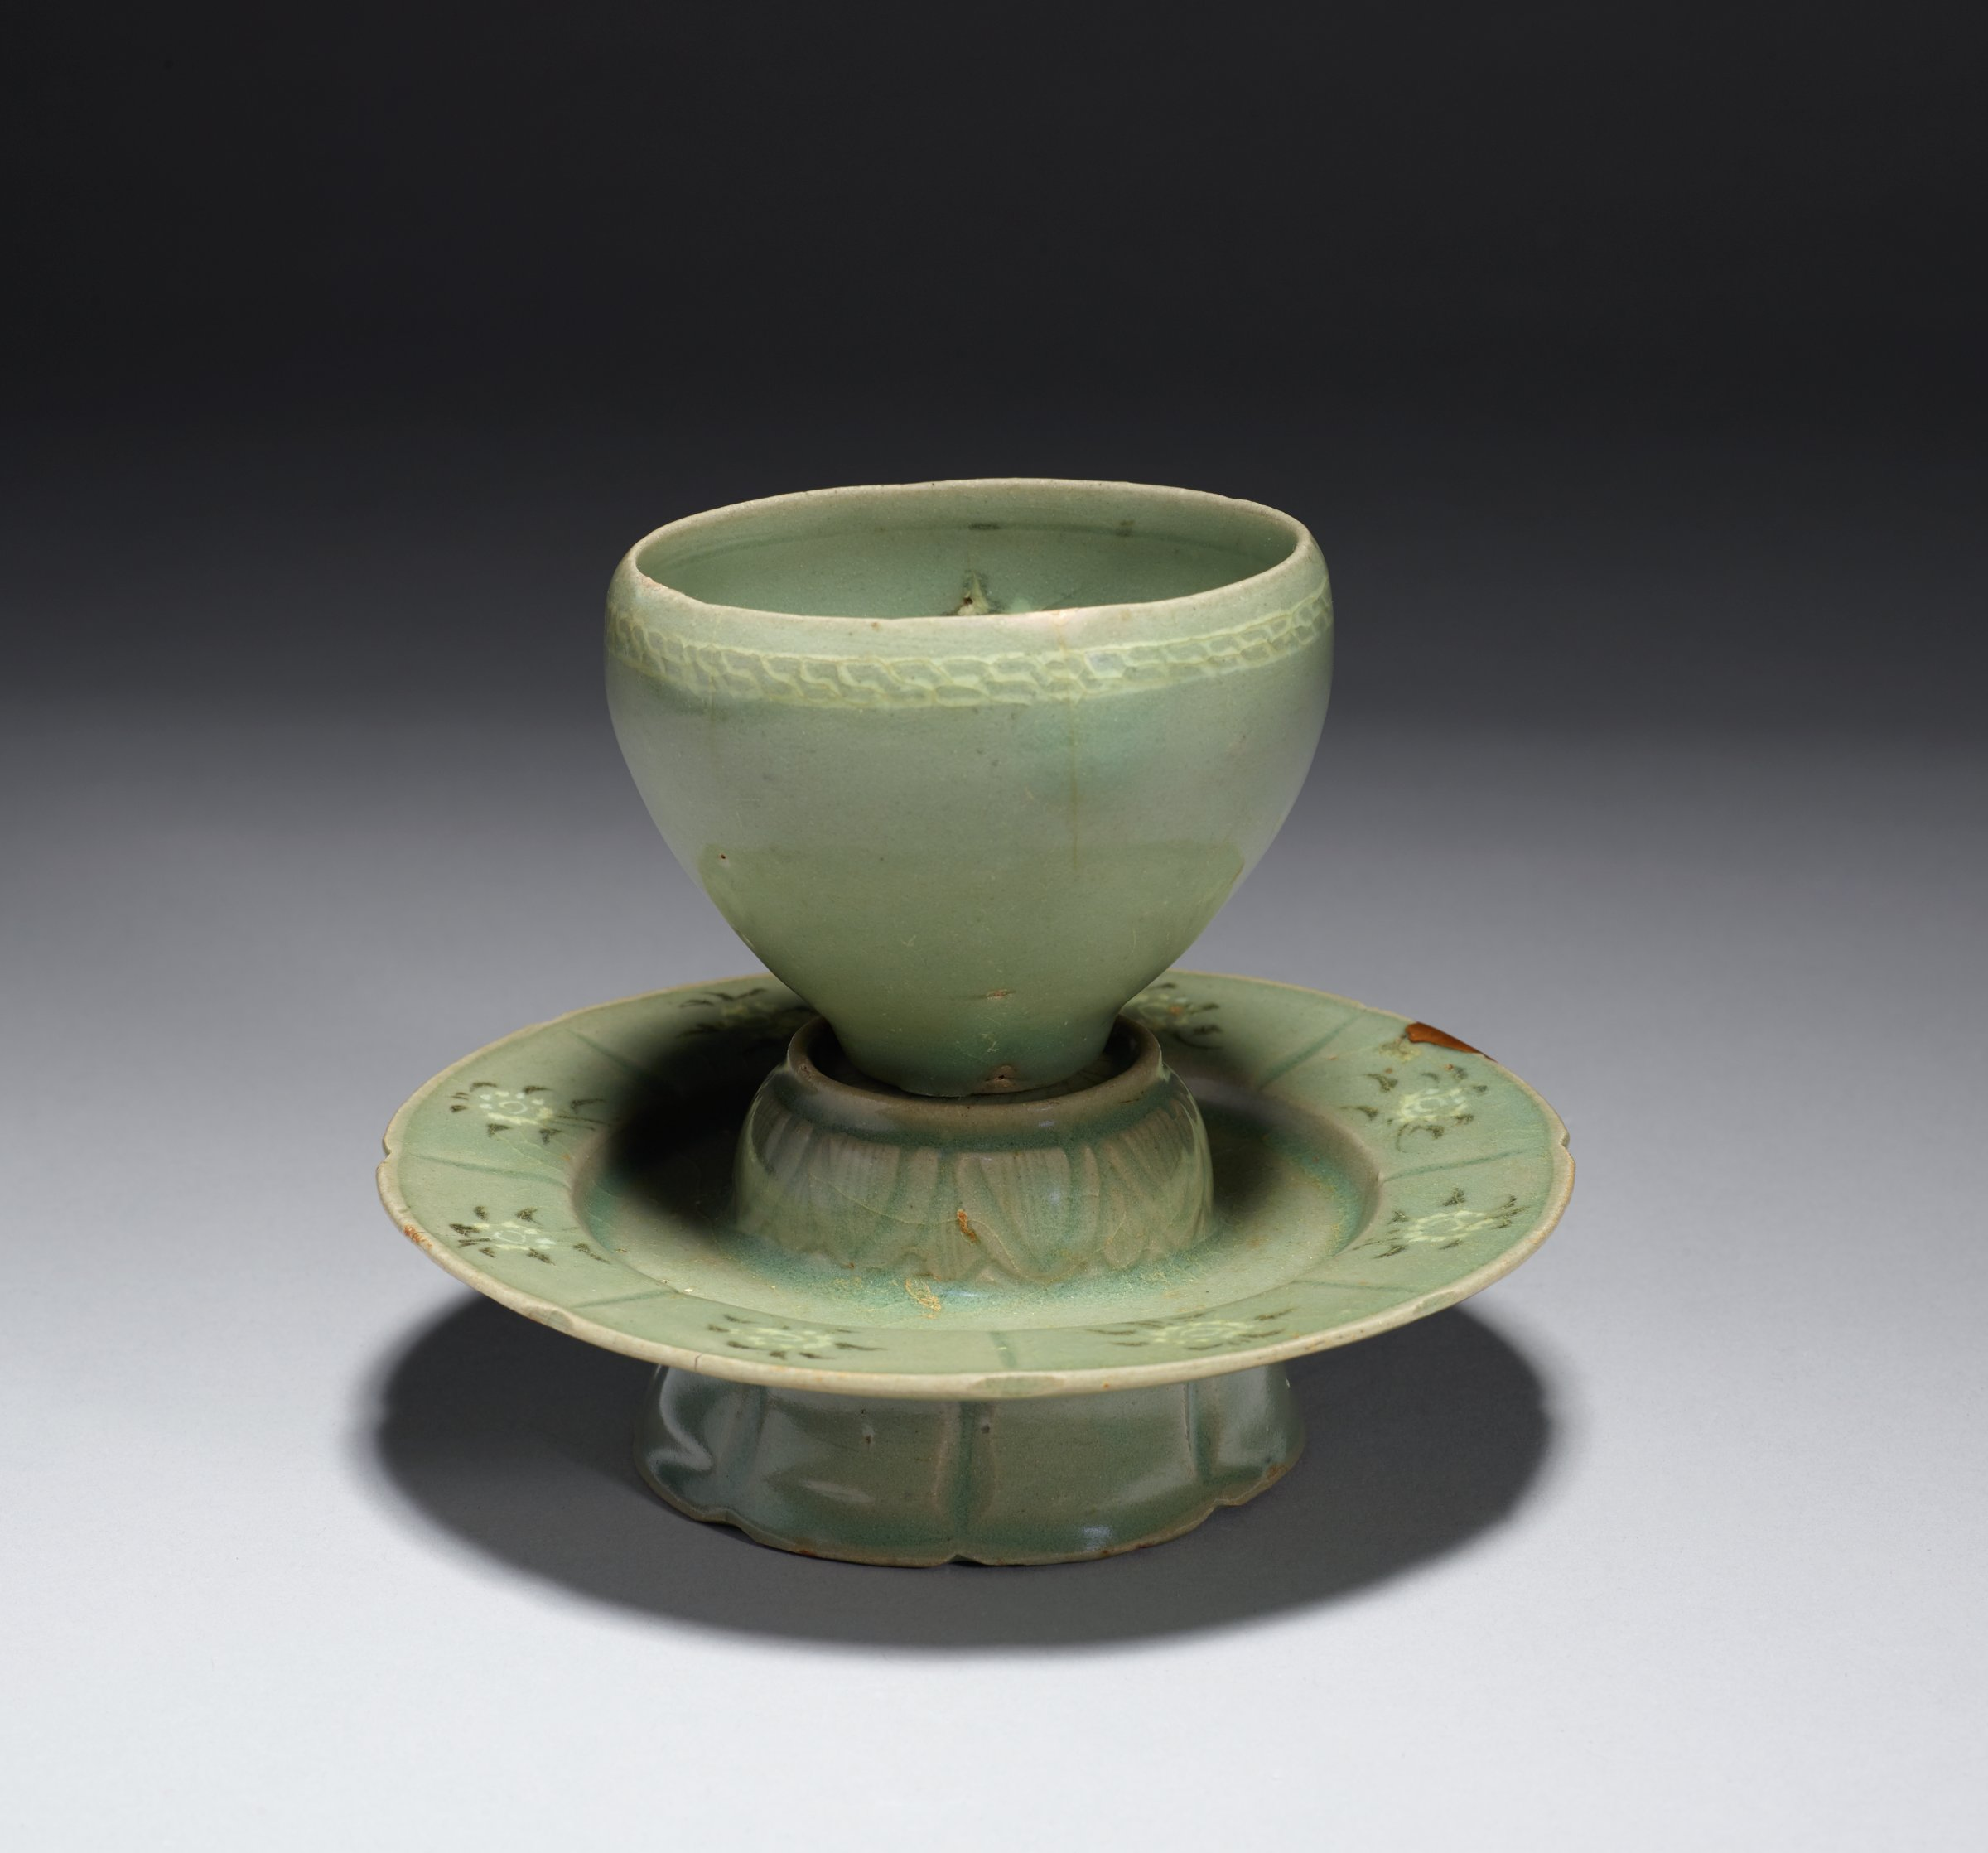 Cup with Interior Peony Motif and Exterior Meandering Key Border and Saucer with Lotus and Peony Motifs. Pressed glaze on outer lip during firing. gold lacquer repair on saucer lip